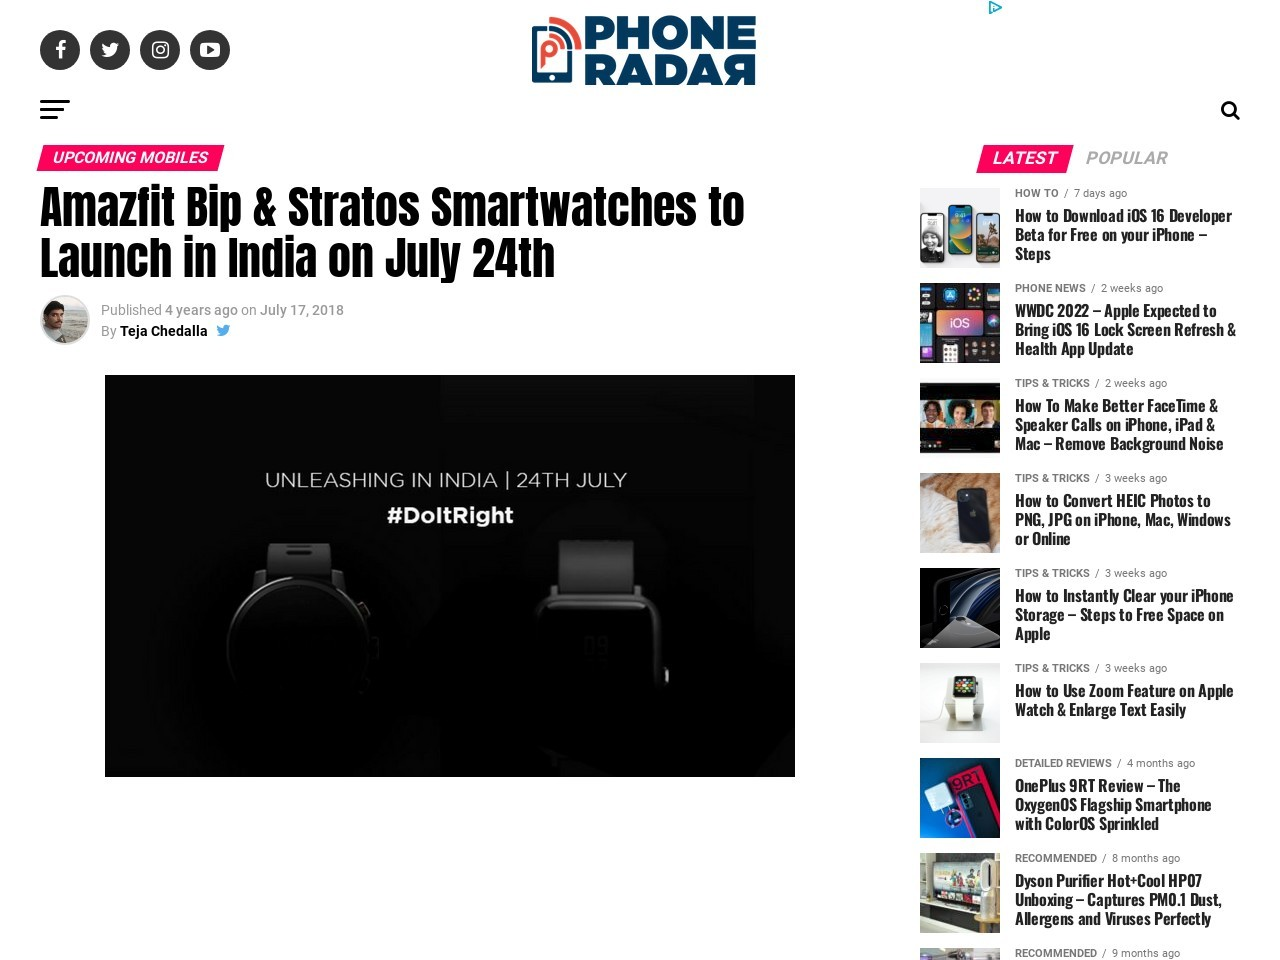 Amazfit Bip & Stratos Smartwatches to Launch in India on July 24th